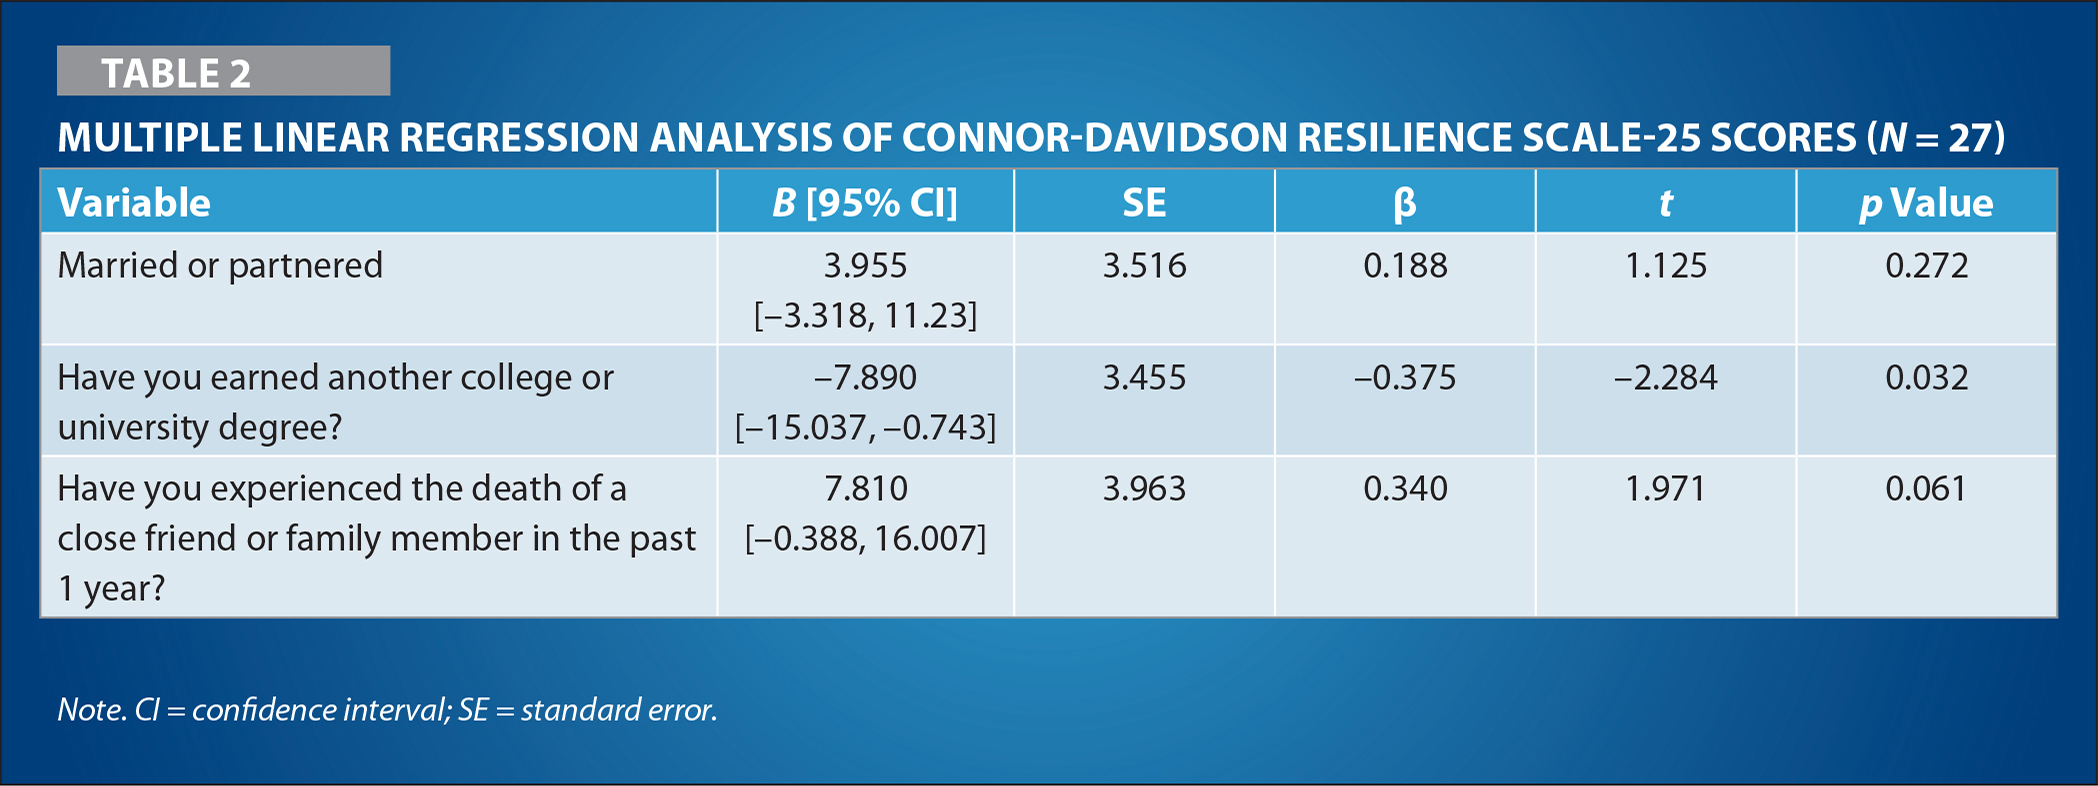 Multiple Linear Regression Analysis of Connor-Davidson Resilience Scale-25 Scores (N = 27)